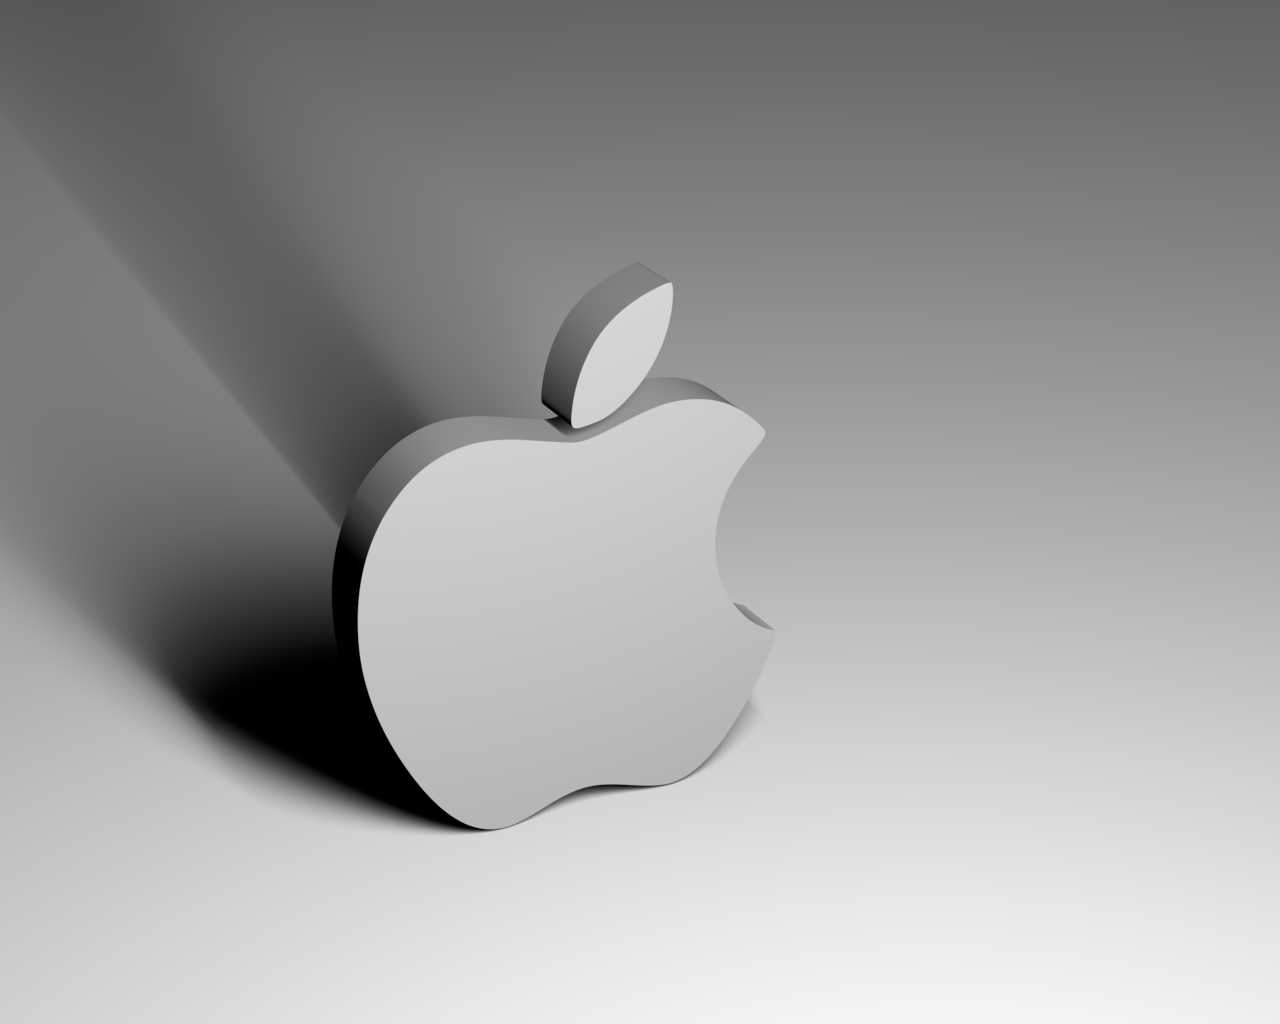 3D Apple Wallpaper